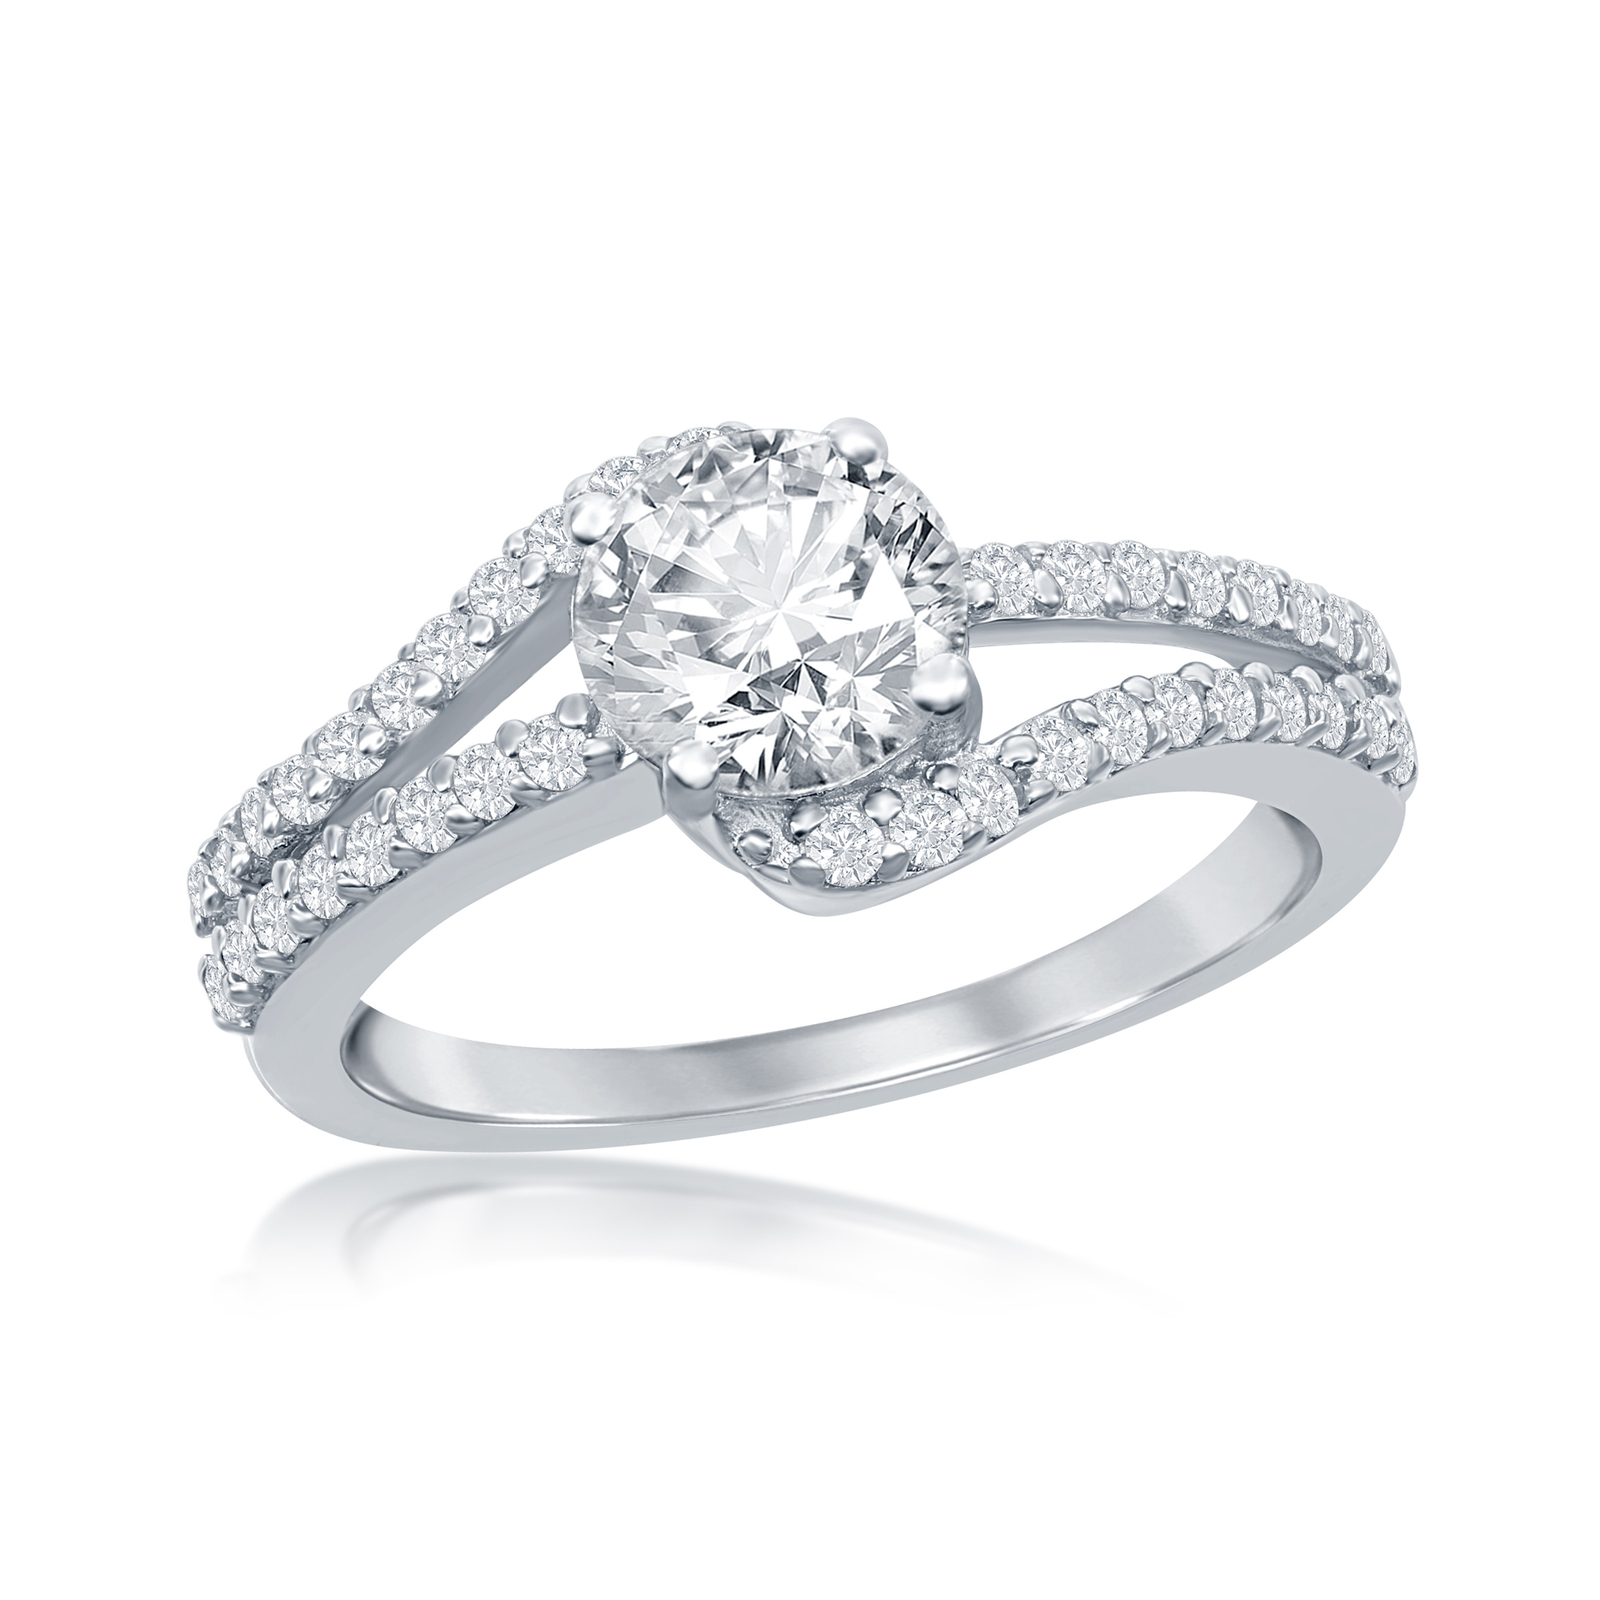 Primary image for  Women's .925 Silver Solitaire ring